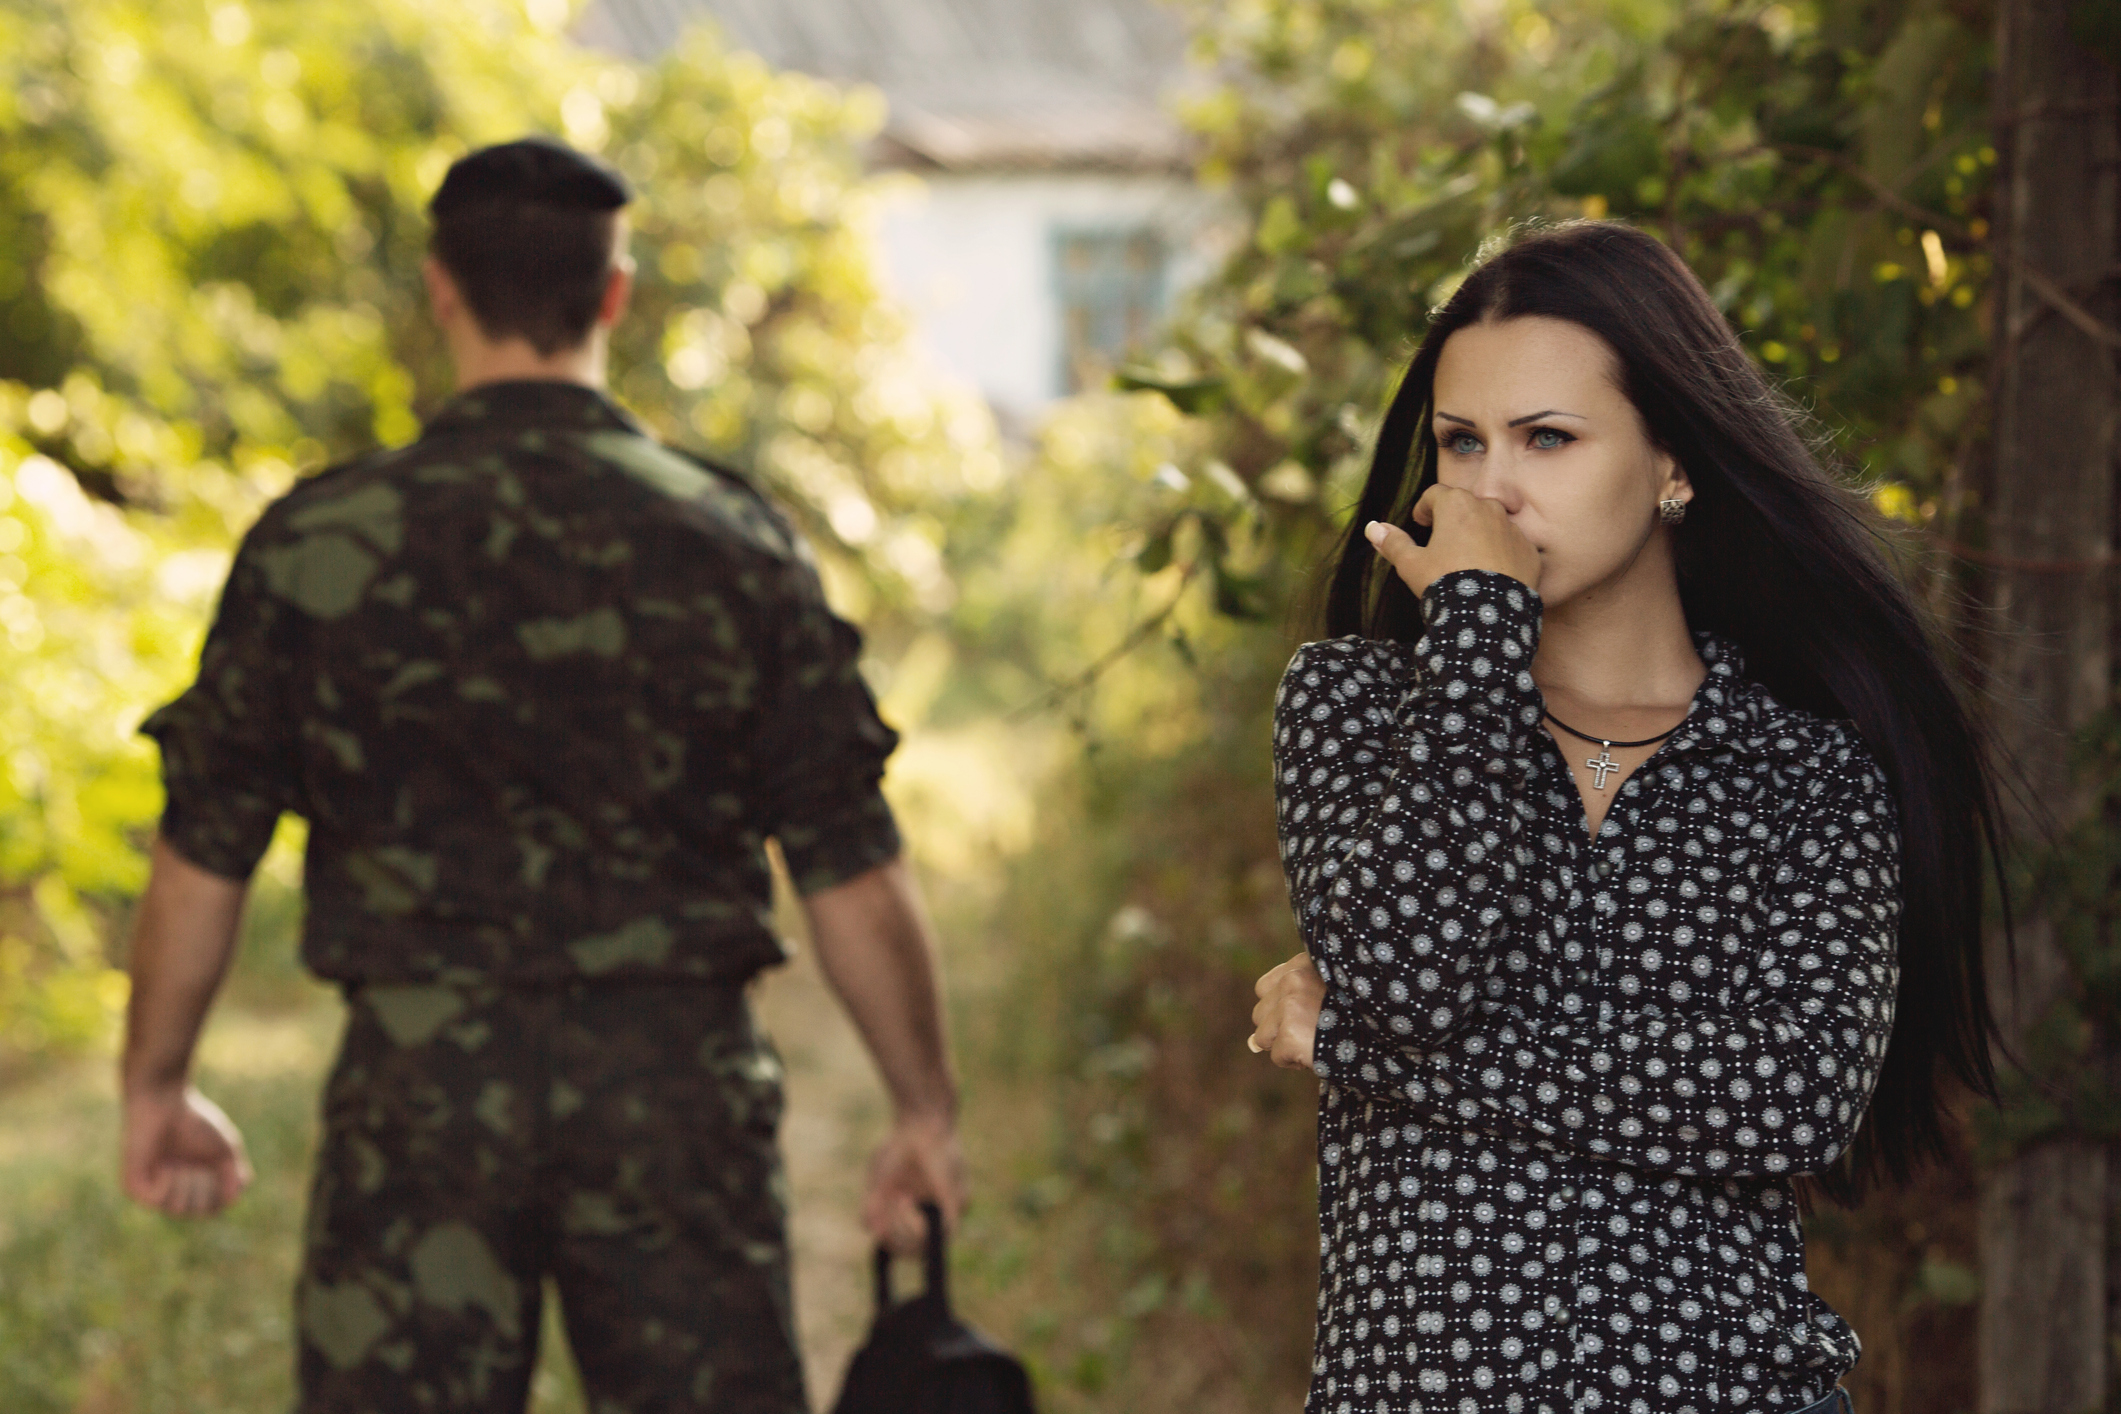 Military man turning his back on his distressed wife